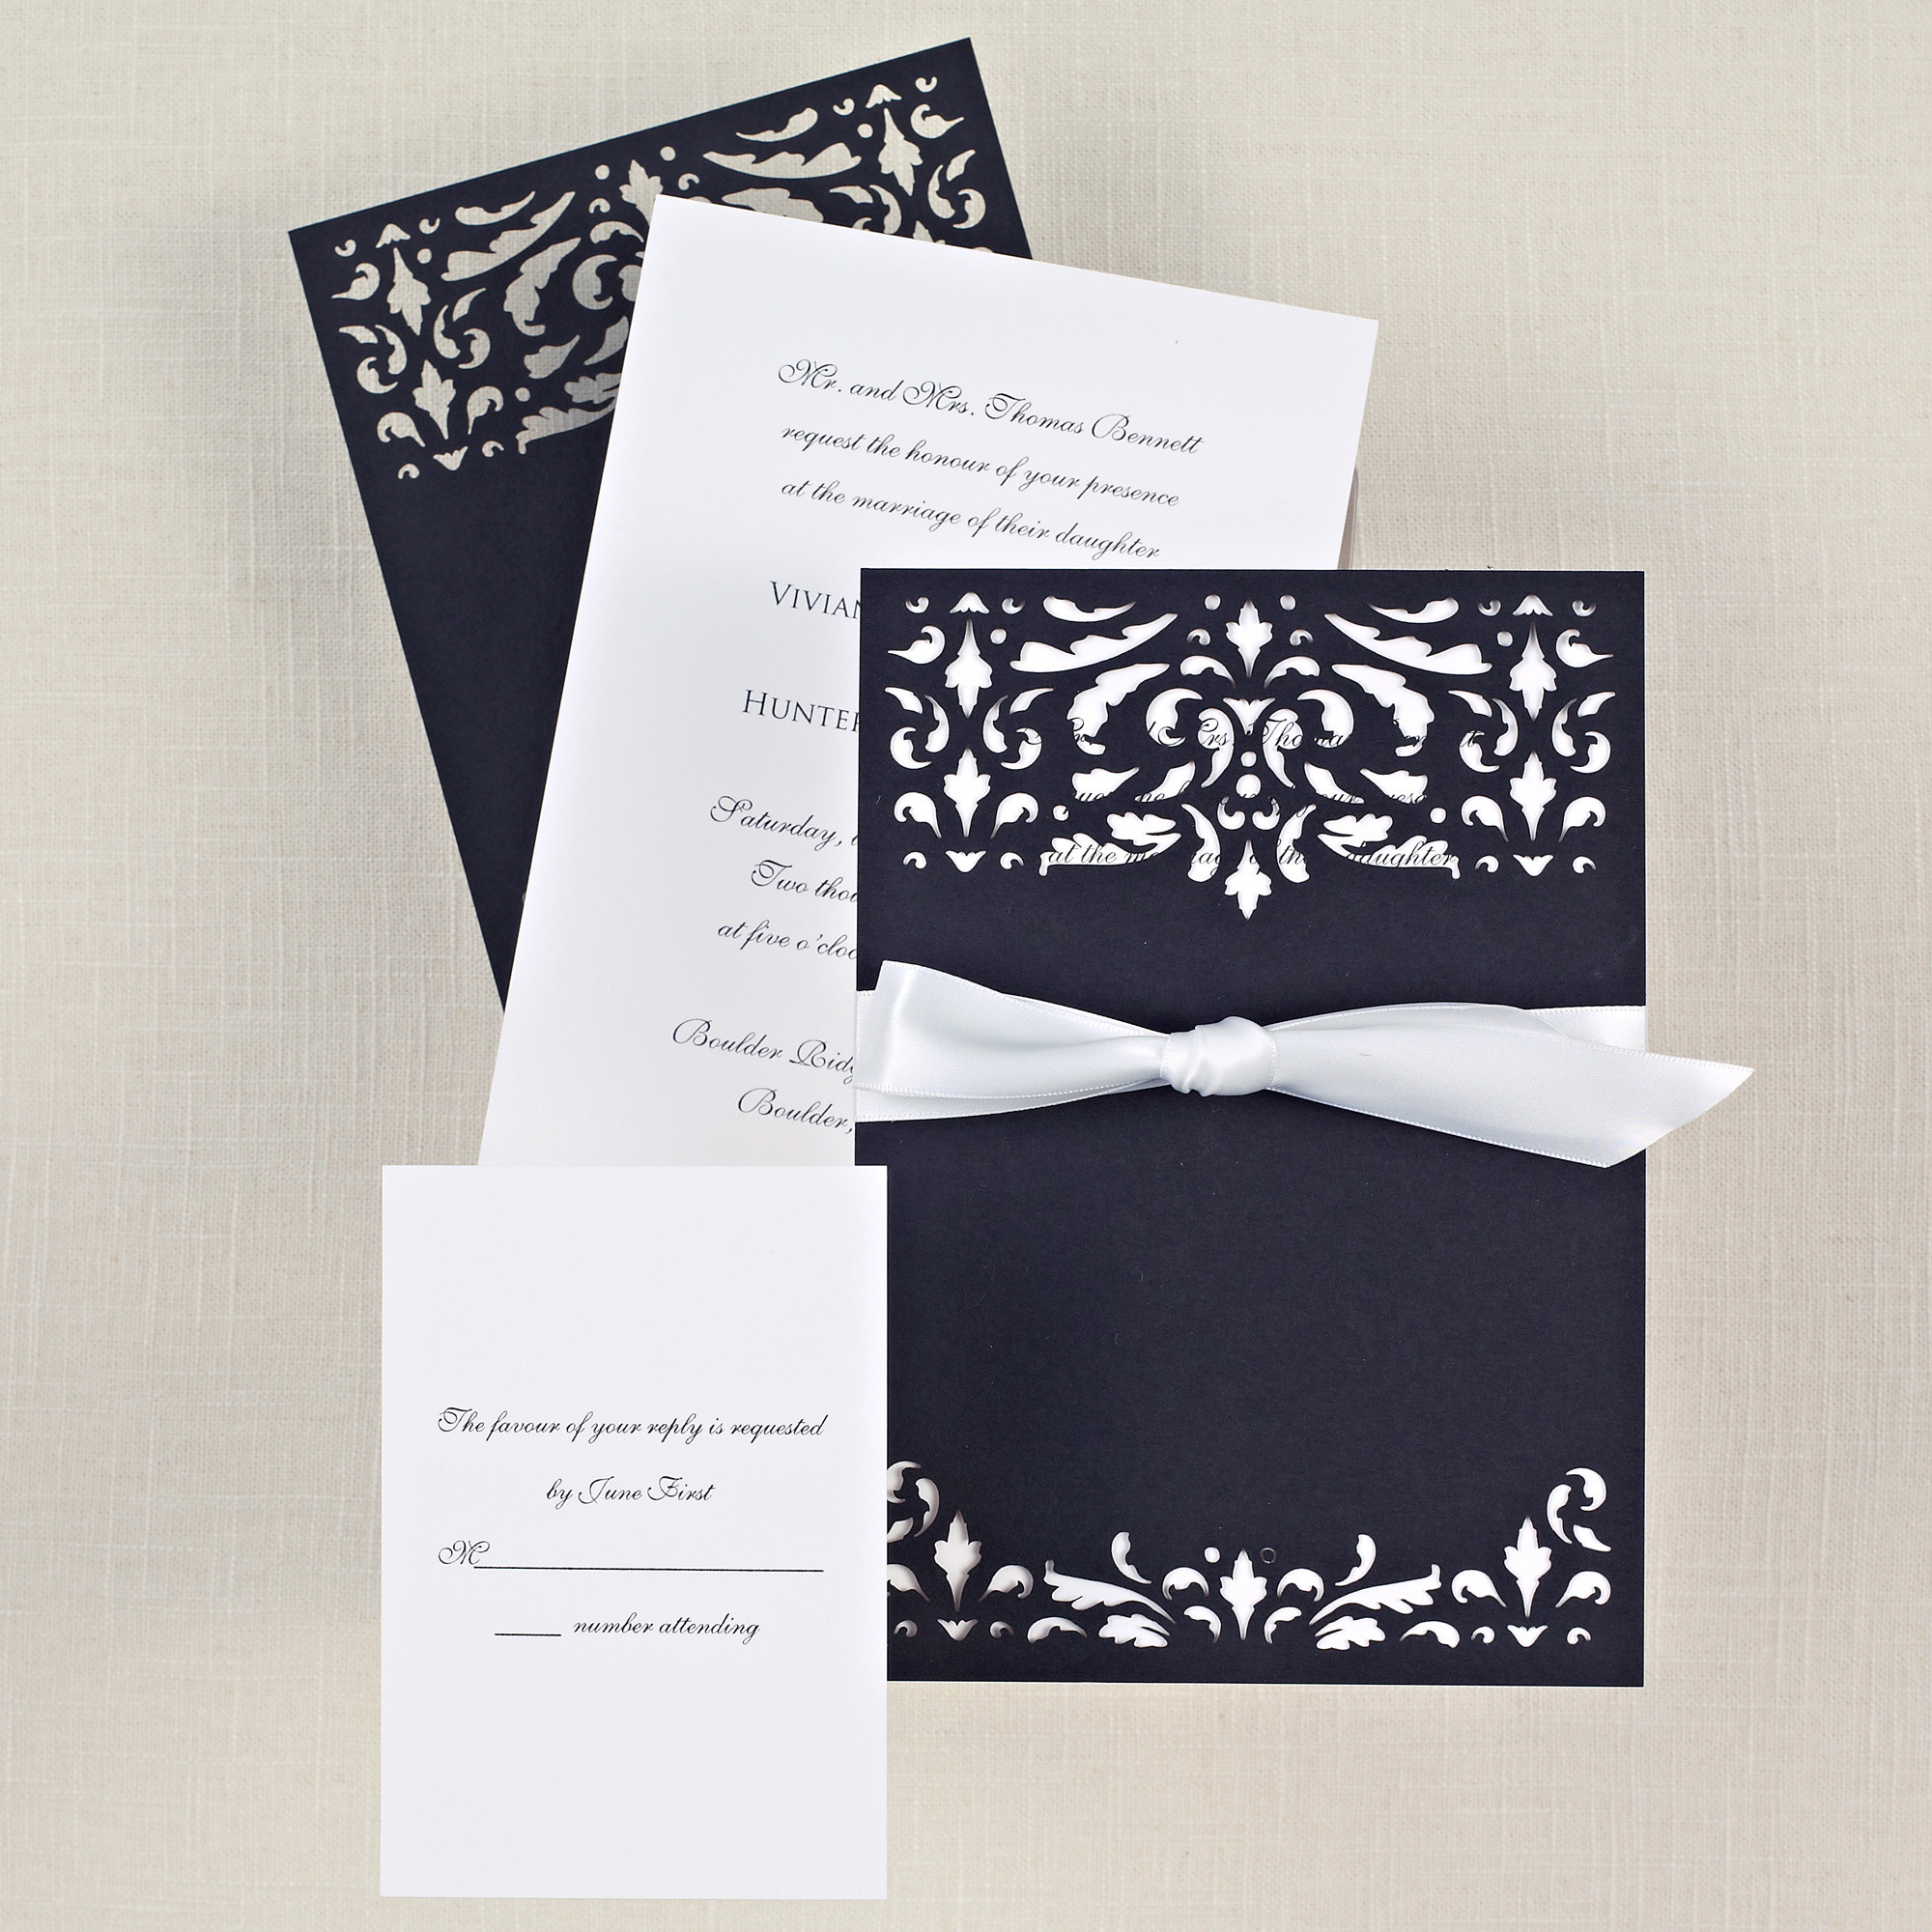 black and white wedding invitations, Wedding invitations